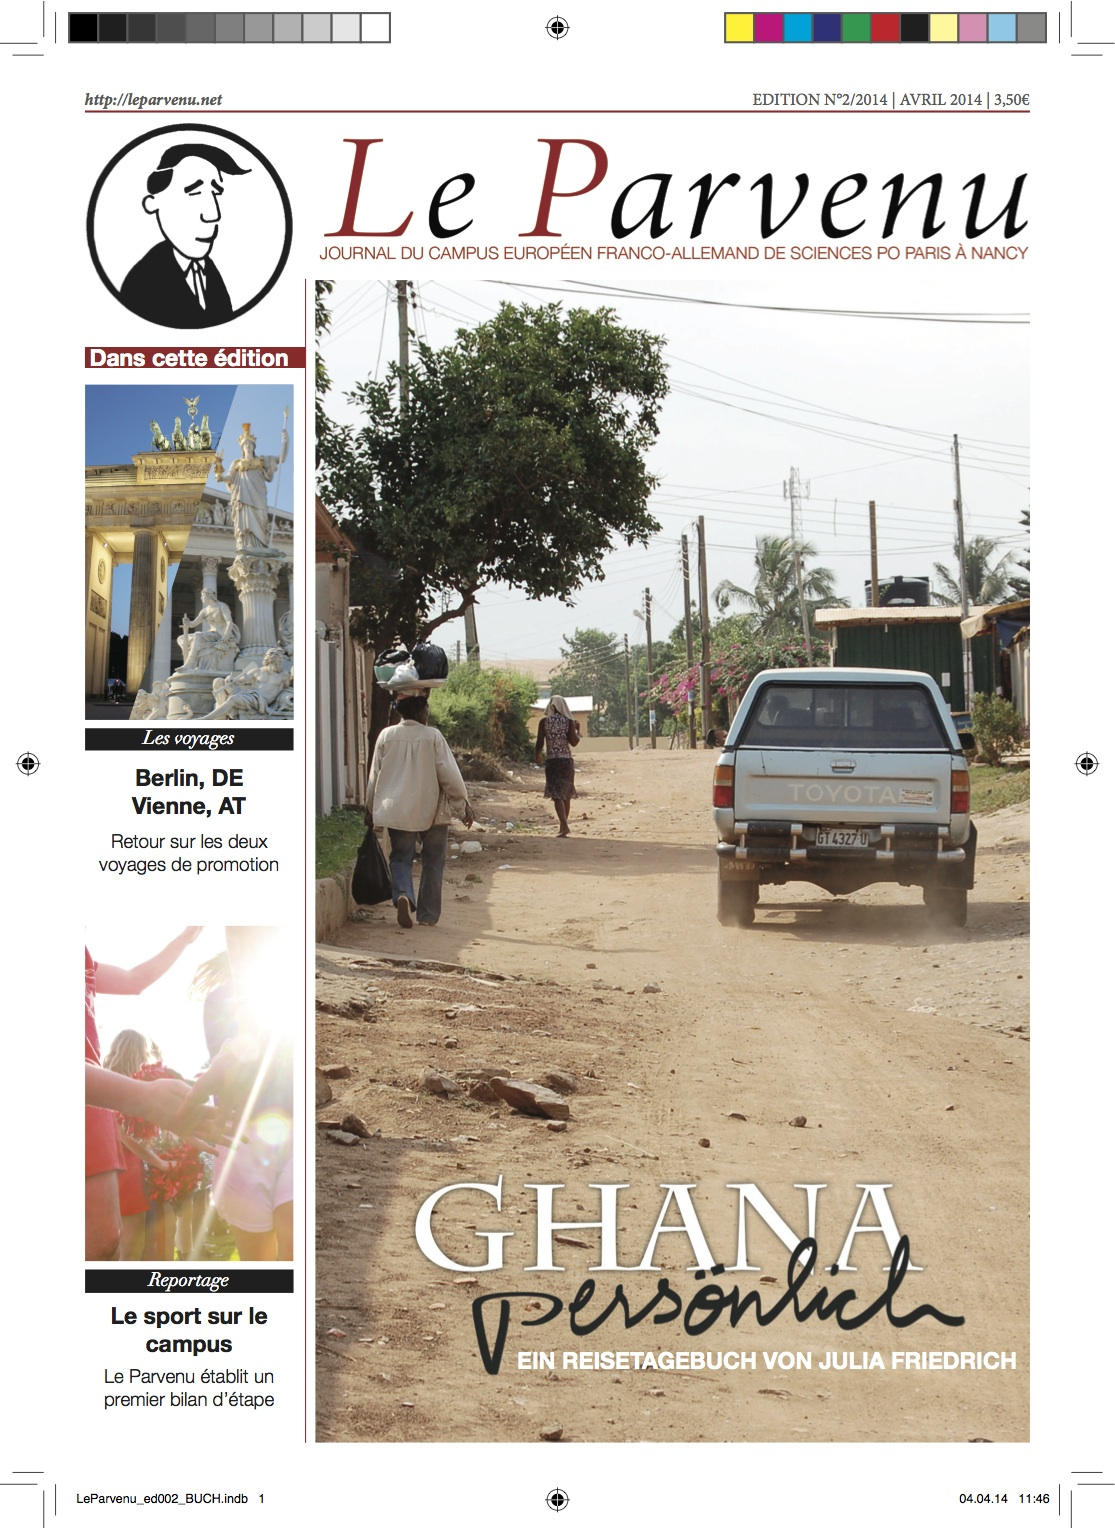 Cover of the second edition of Le Parvenu in its new design.